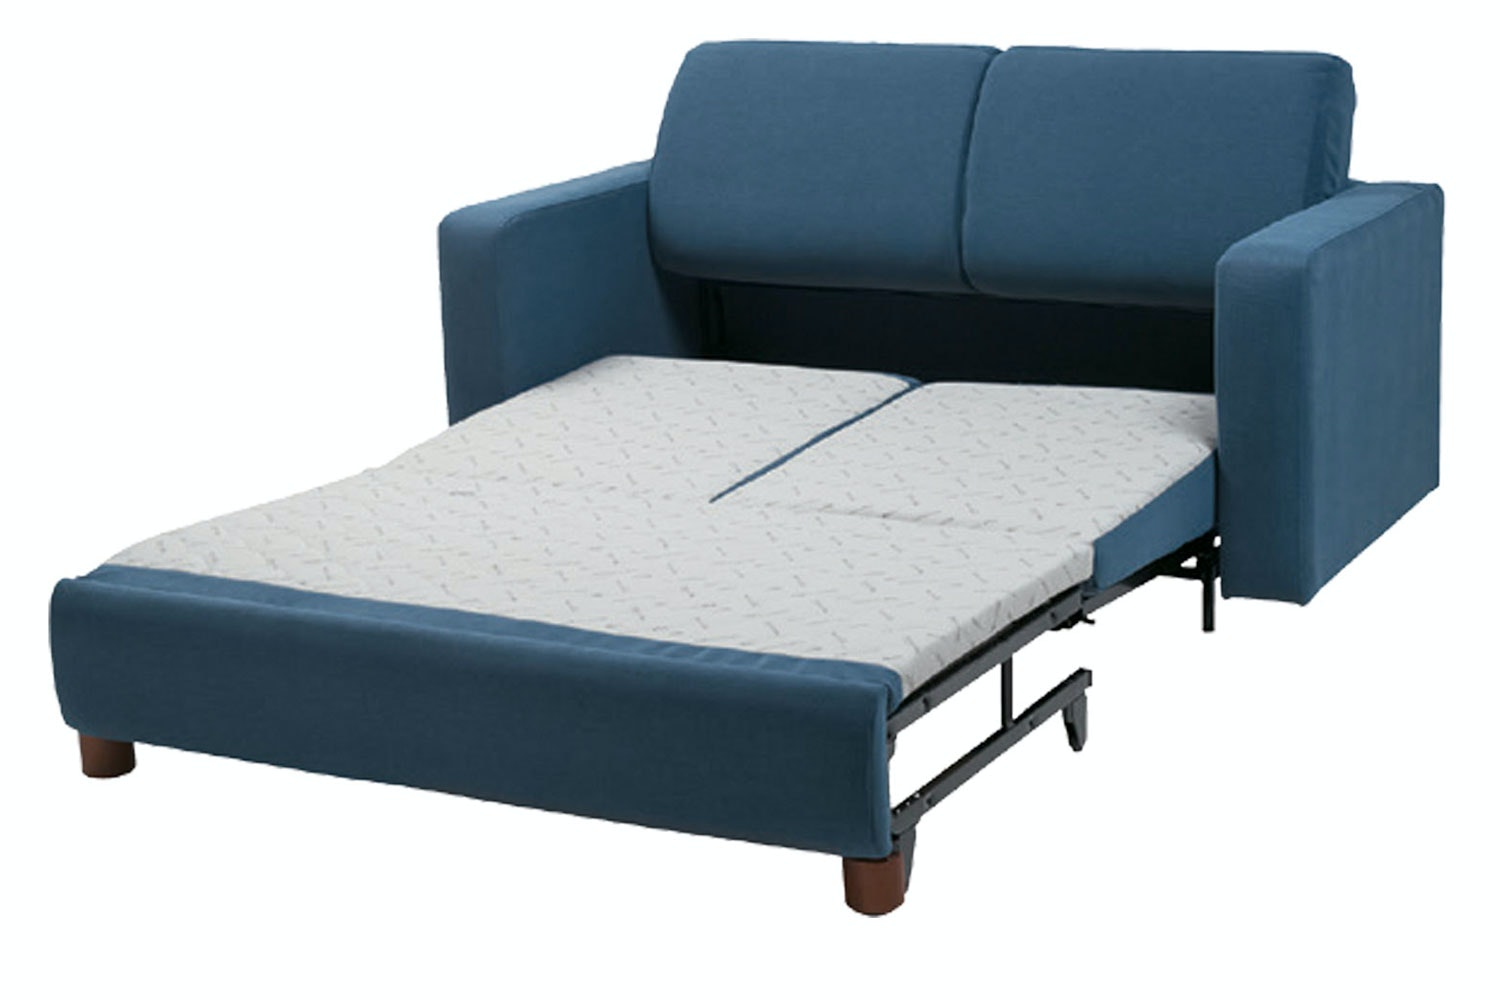 Picture of: Sofa Beds Sofa Bed Sofa Sofa Beds Sofas Harvey Norman New Zealand